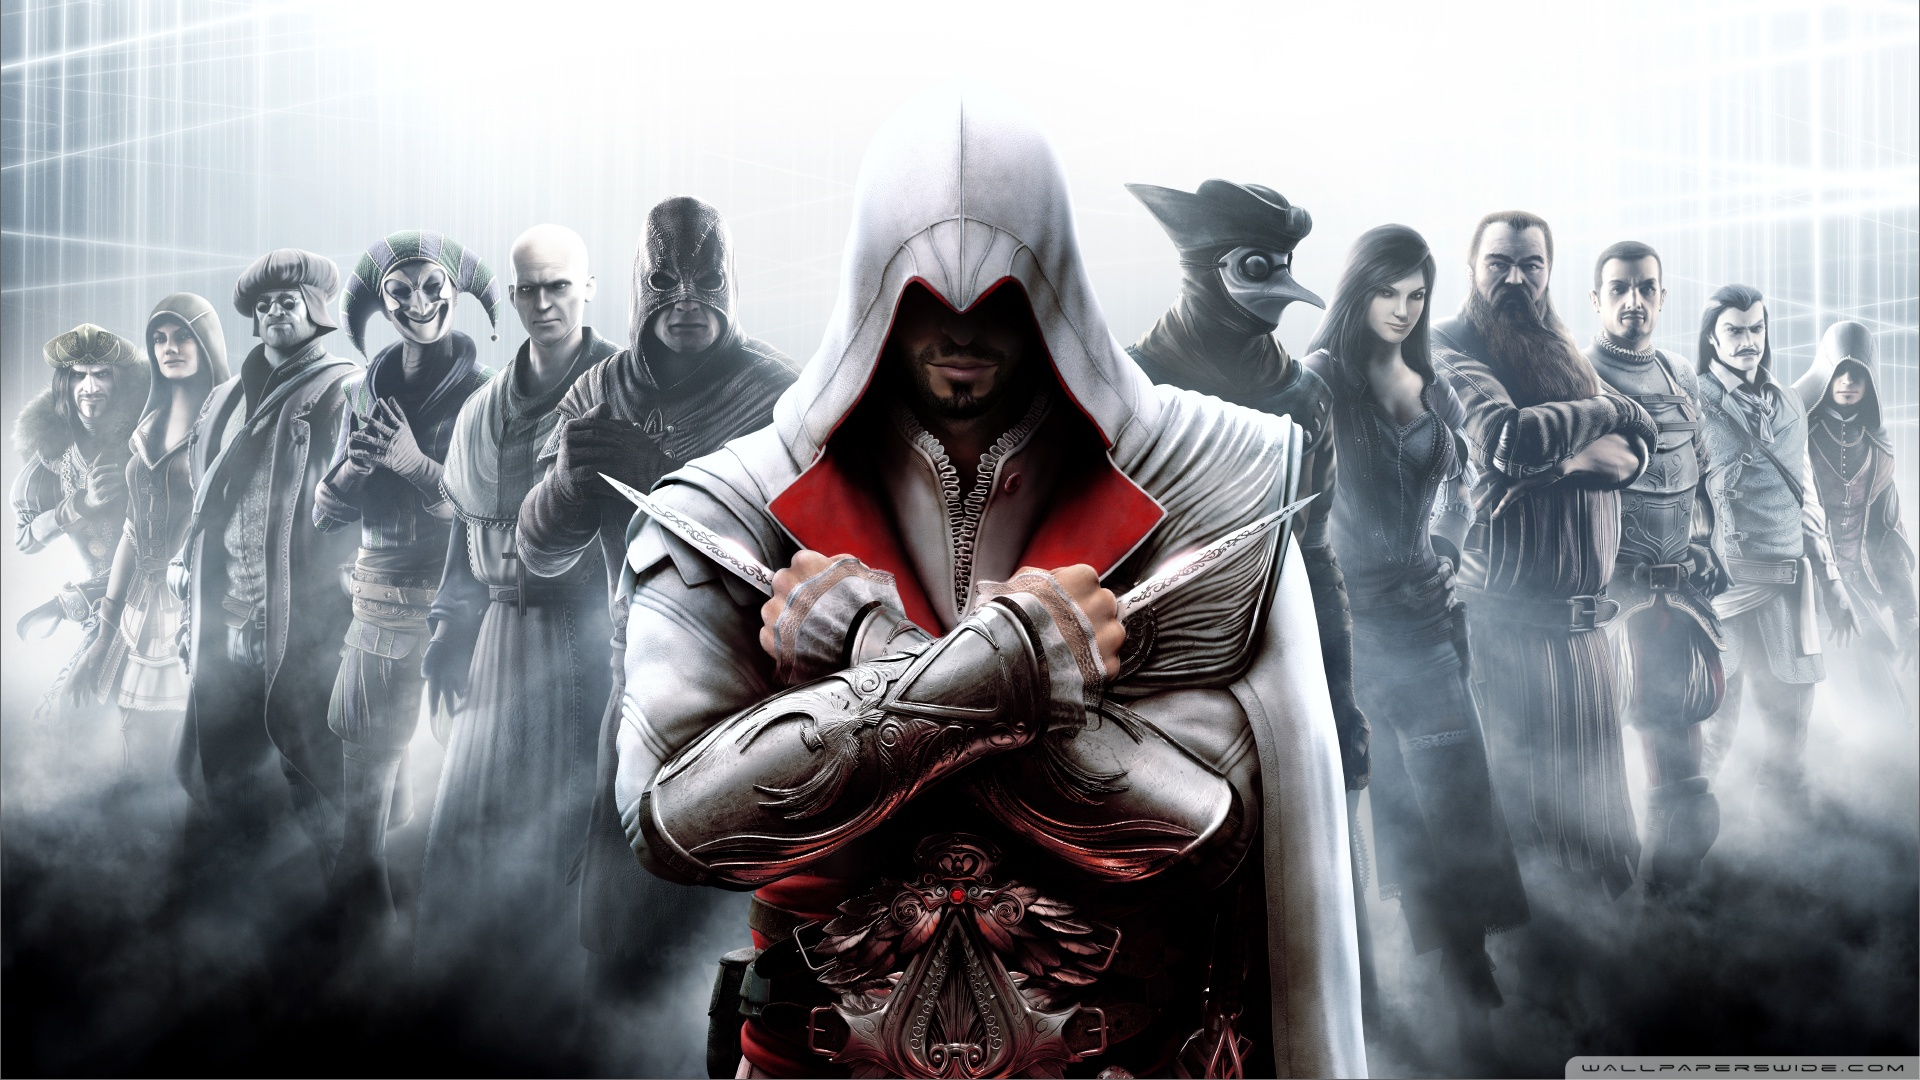 Ezio Games Character Wallpaper HD Awesome #1u0cj68q